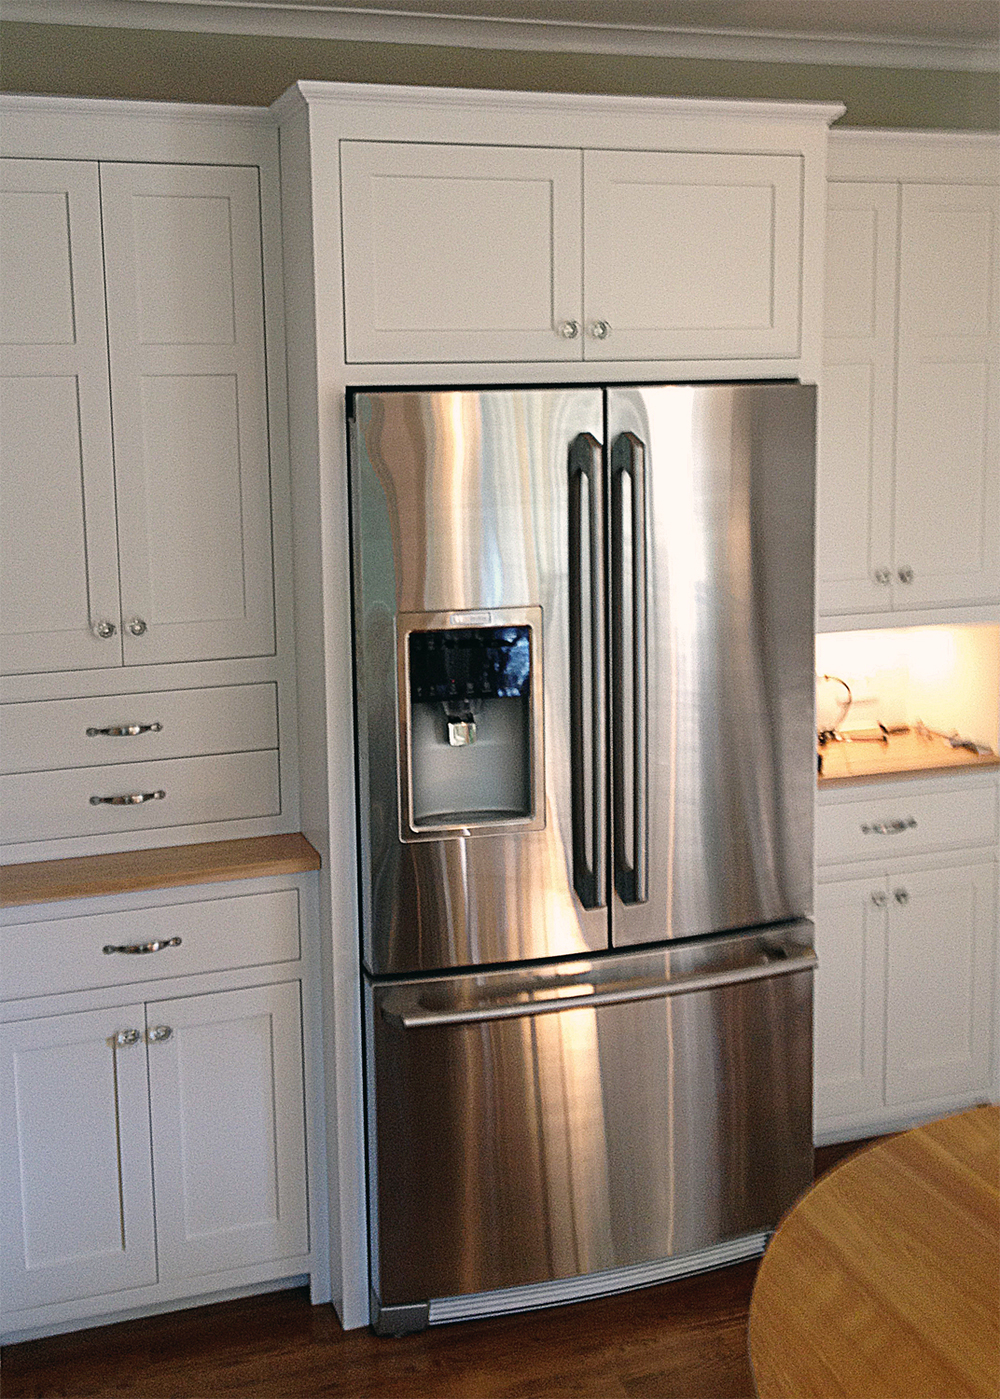 fridge built in 2.jpg